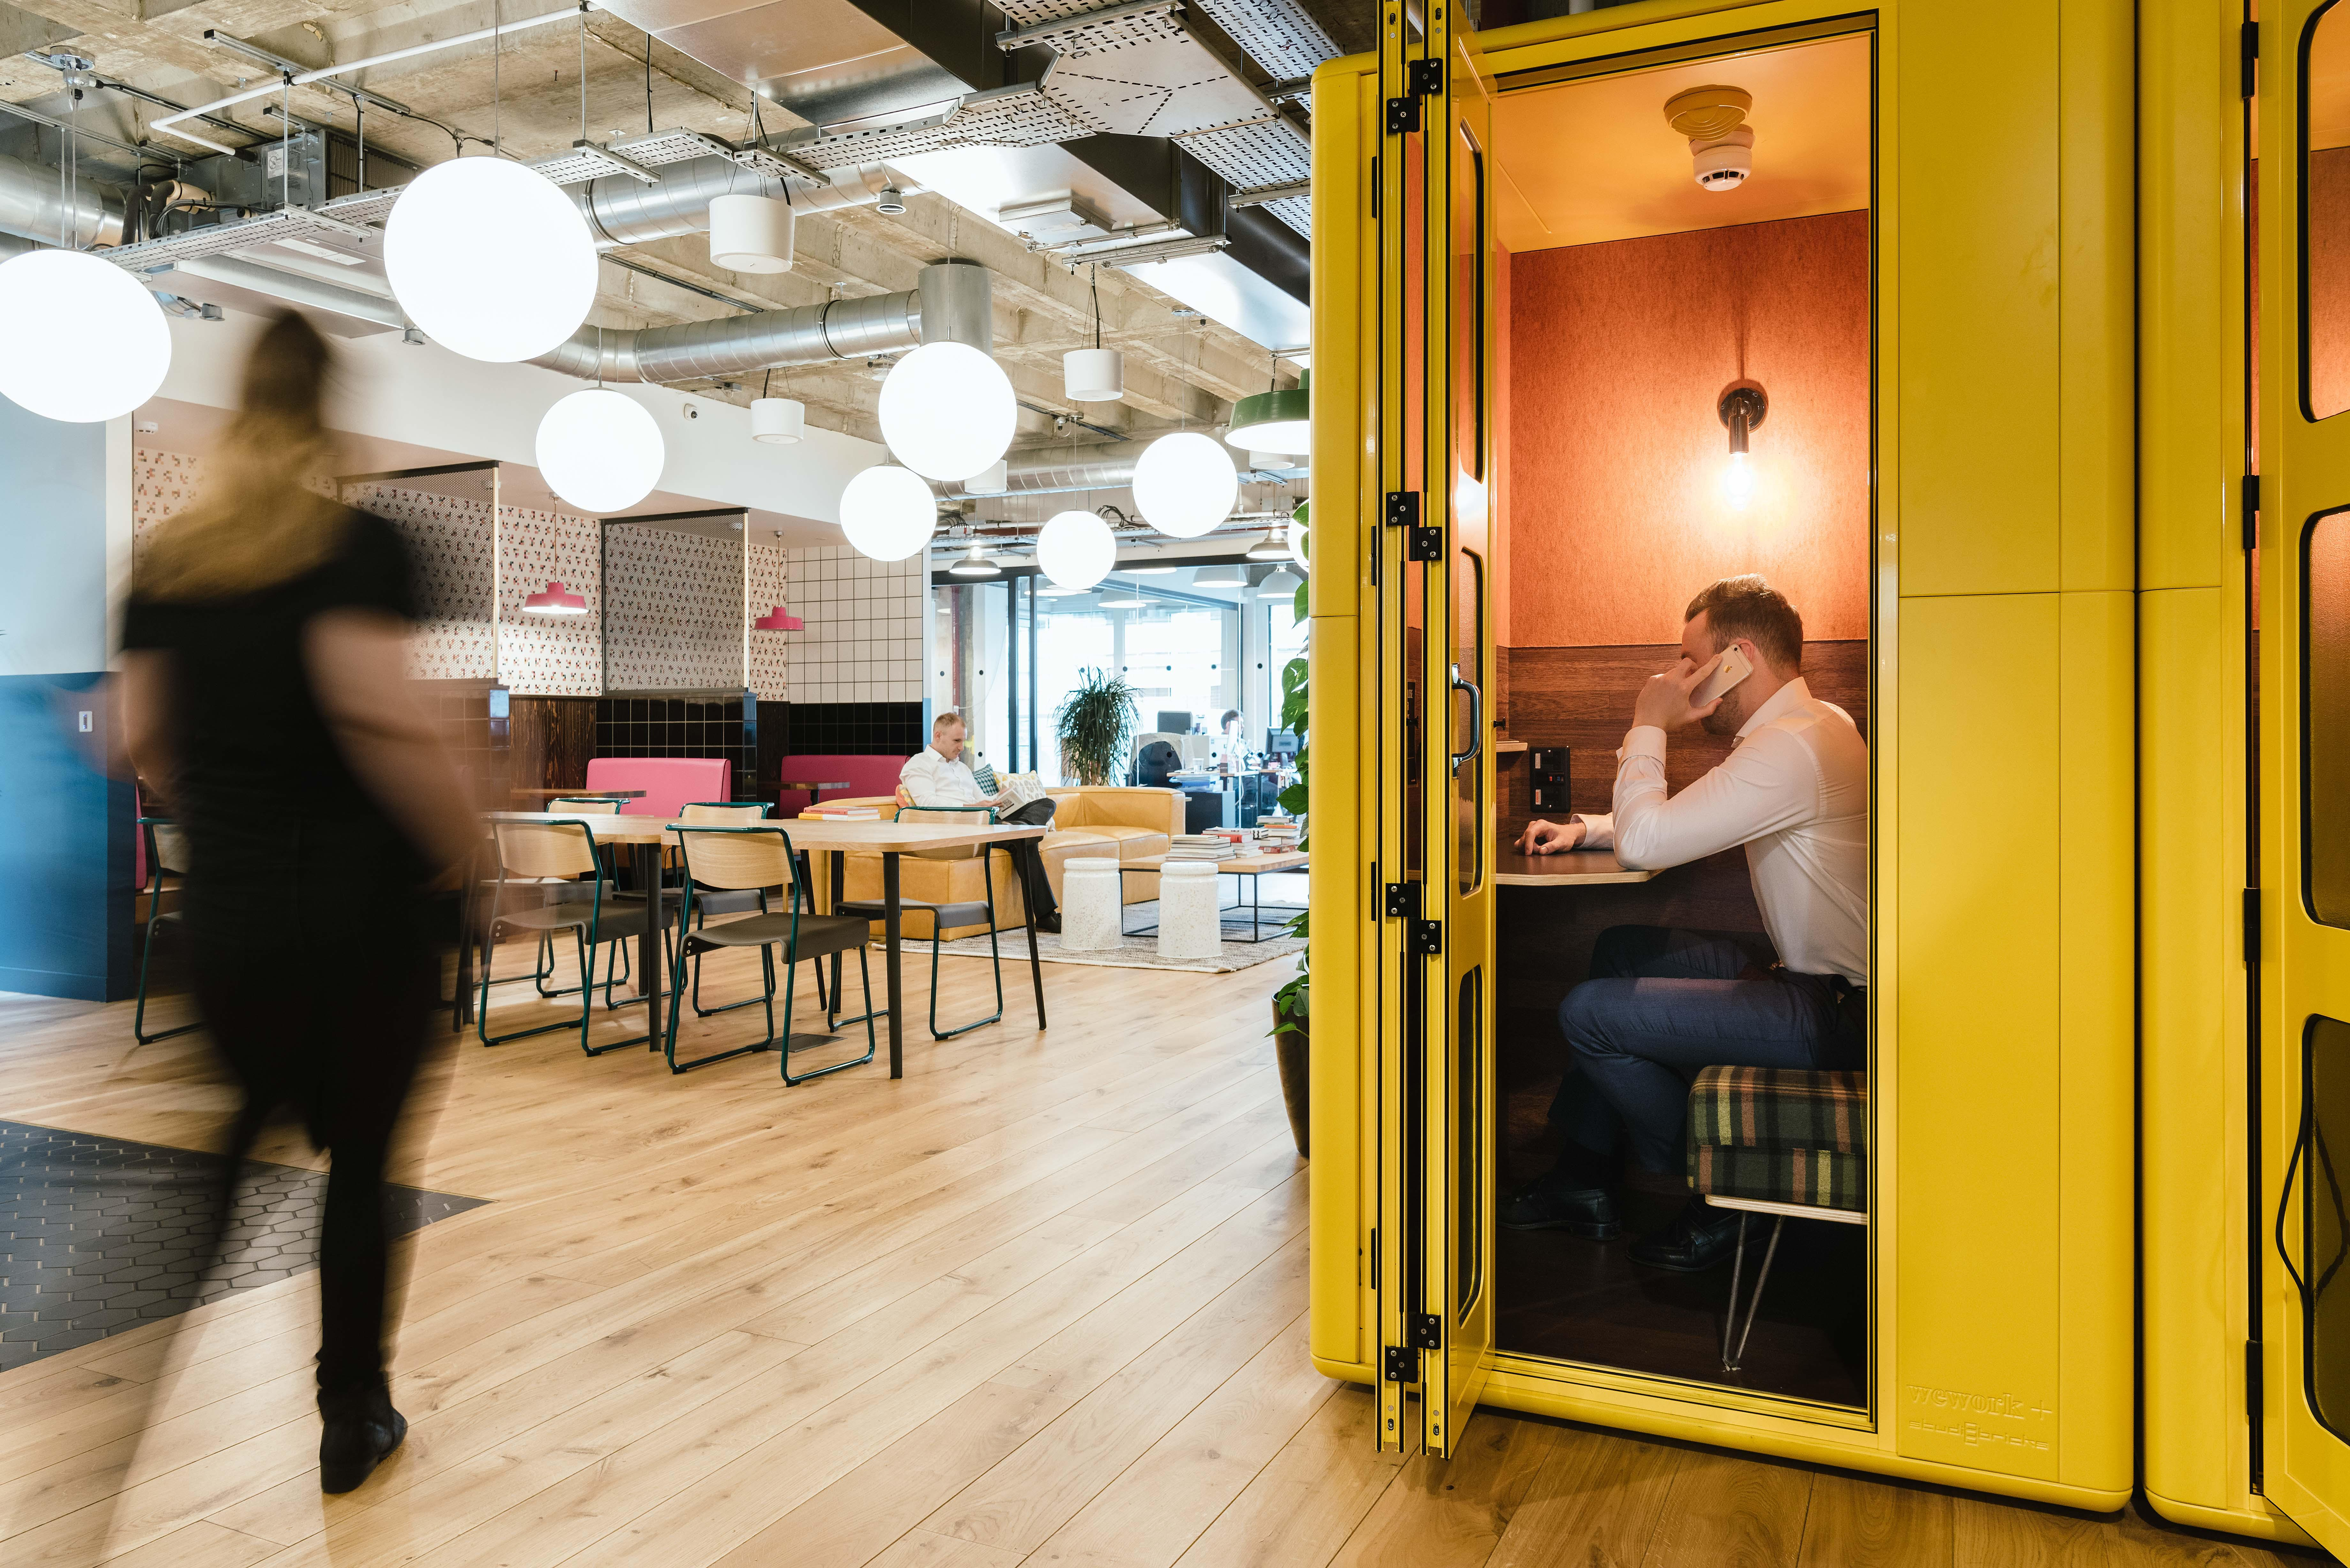 Phone Booth WeWork 33 Queen St London 020 3695 7895